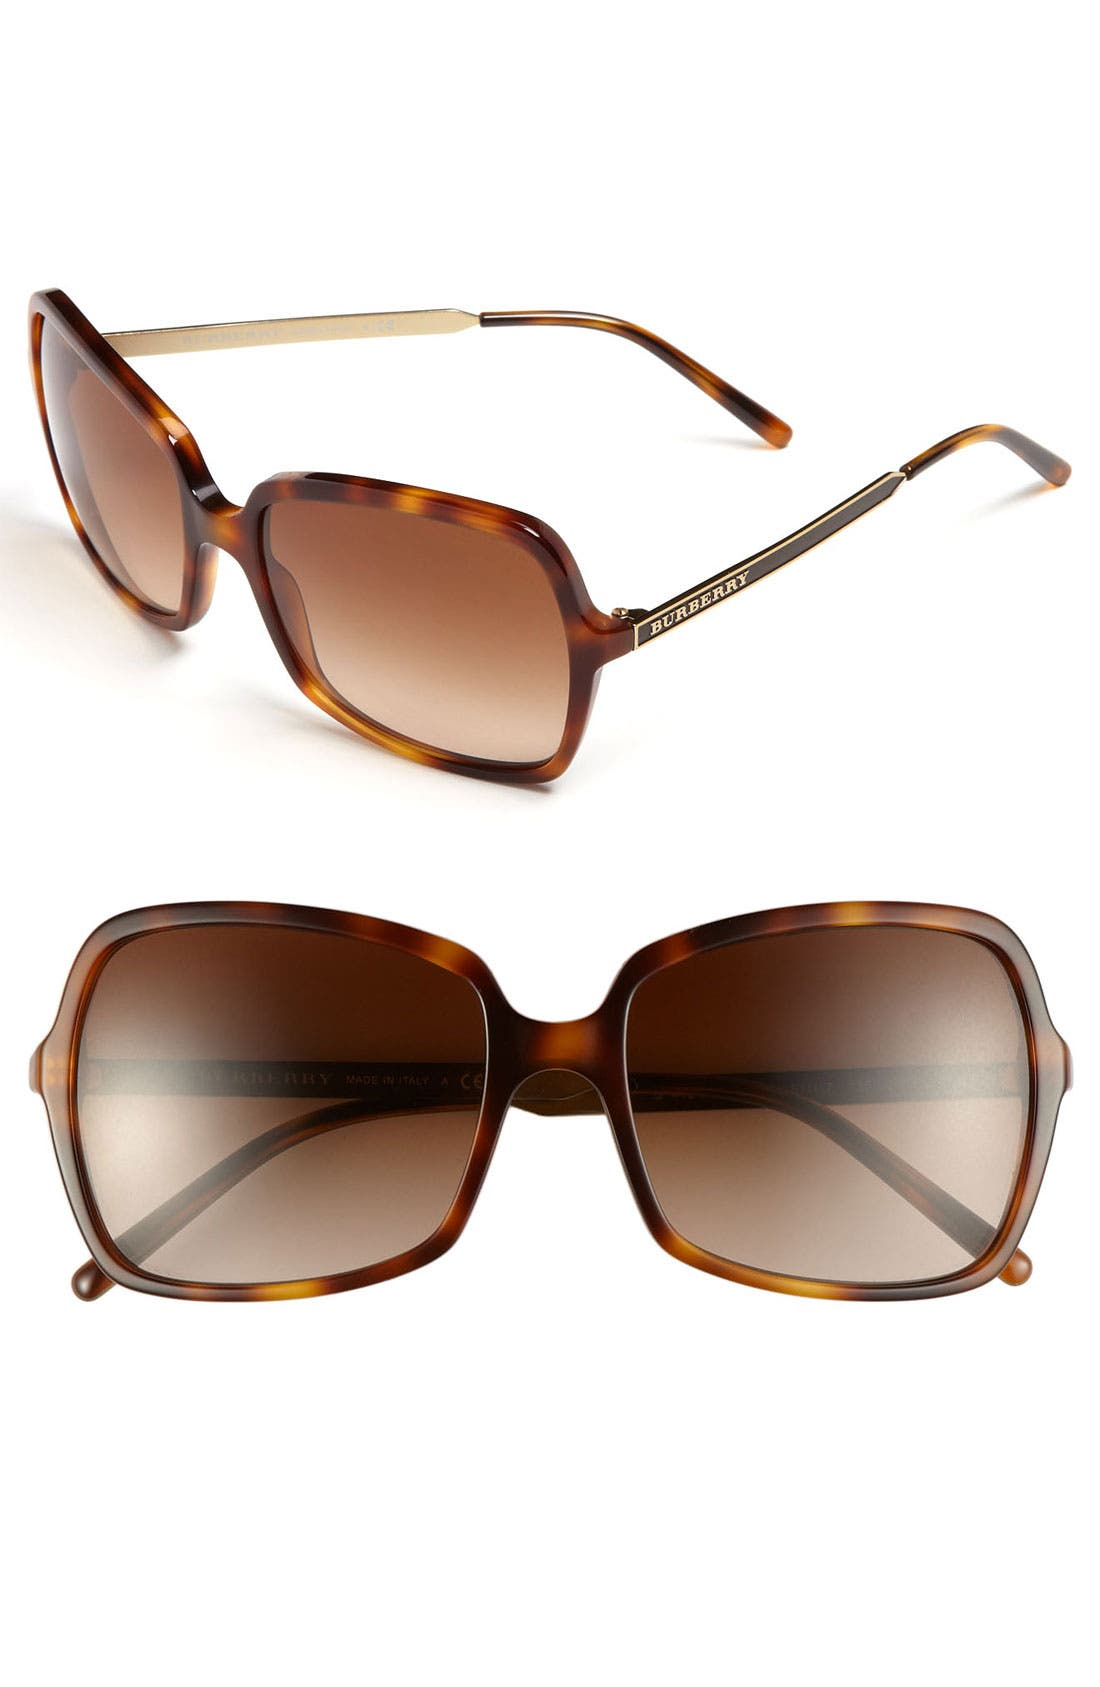 Alternate Image 1 Selected - Burberry Butterfly 57mm Sunglasses